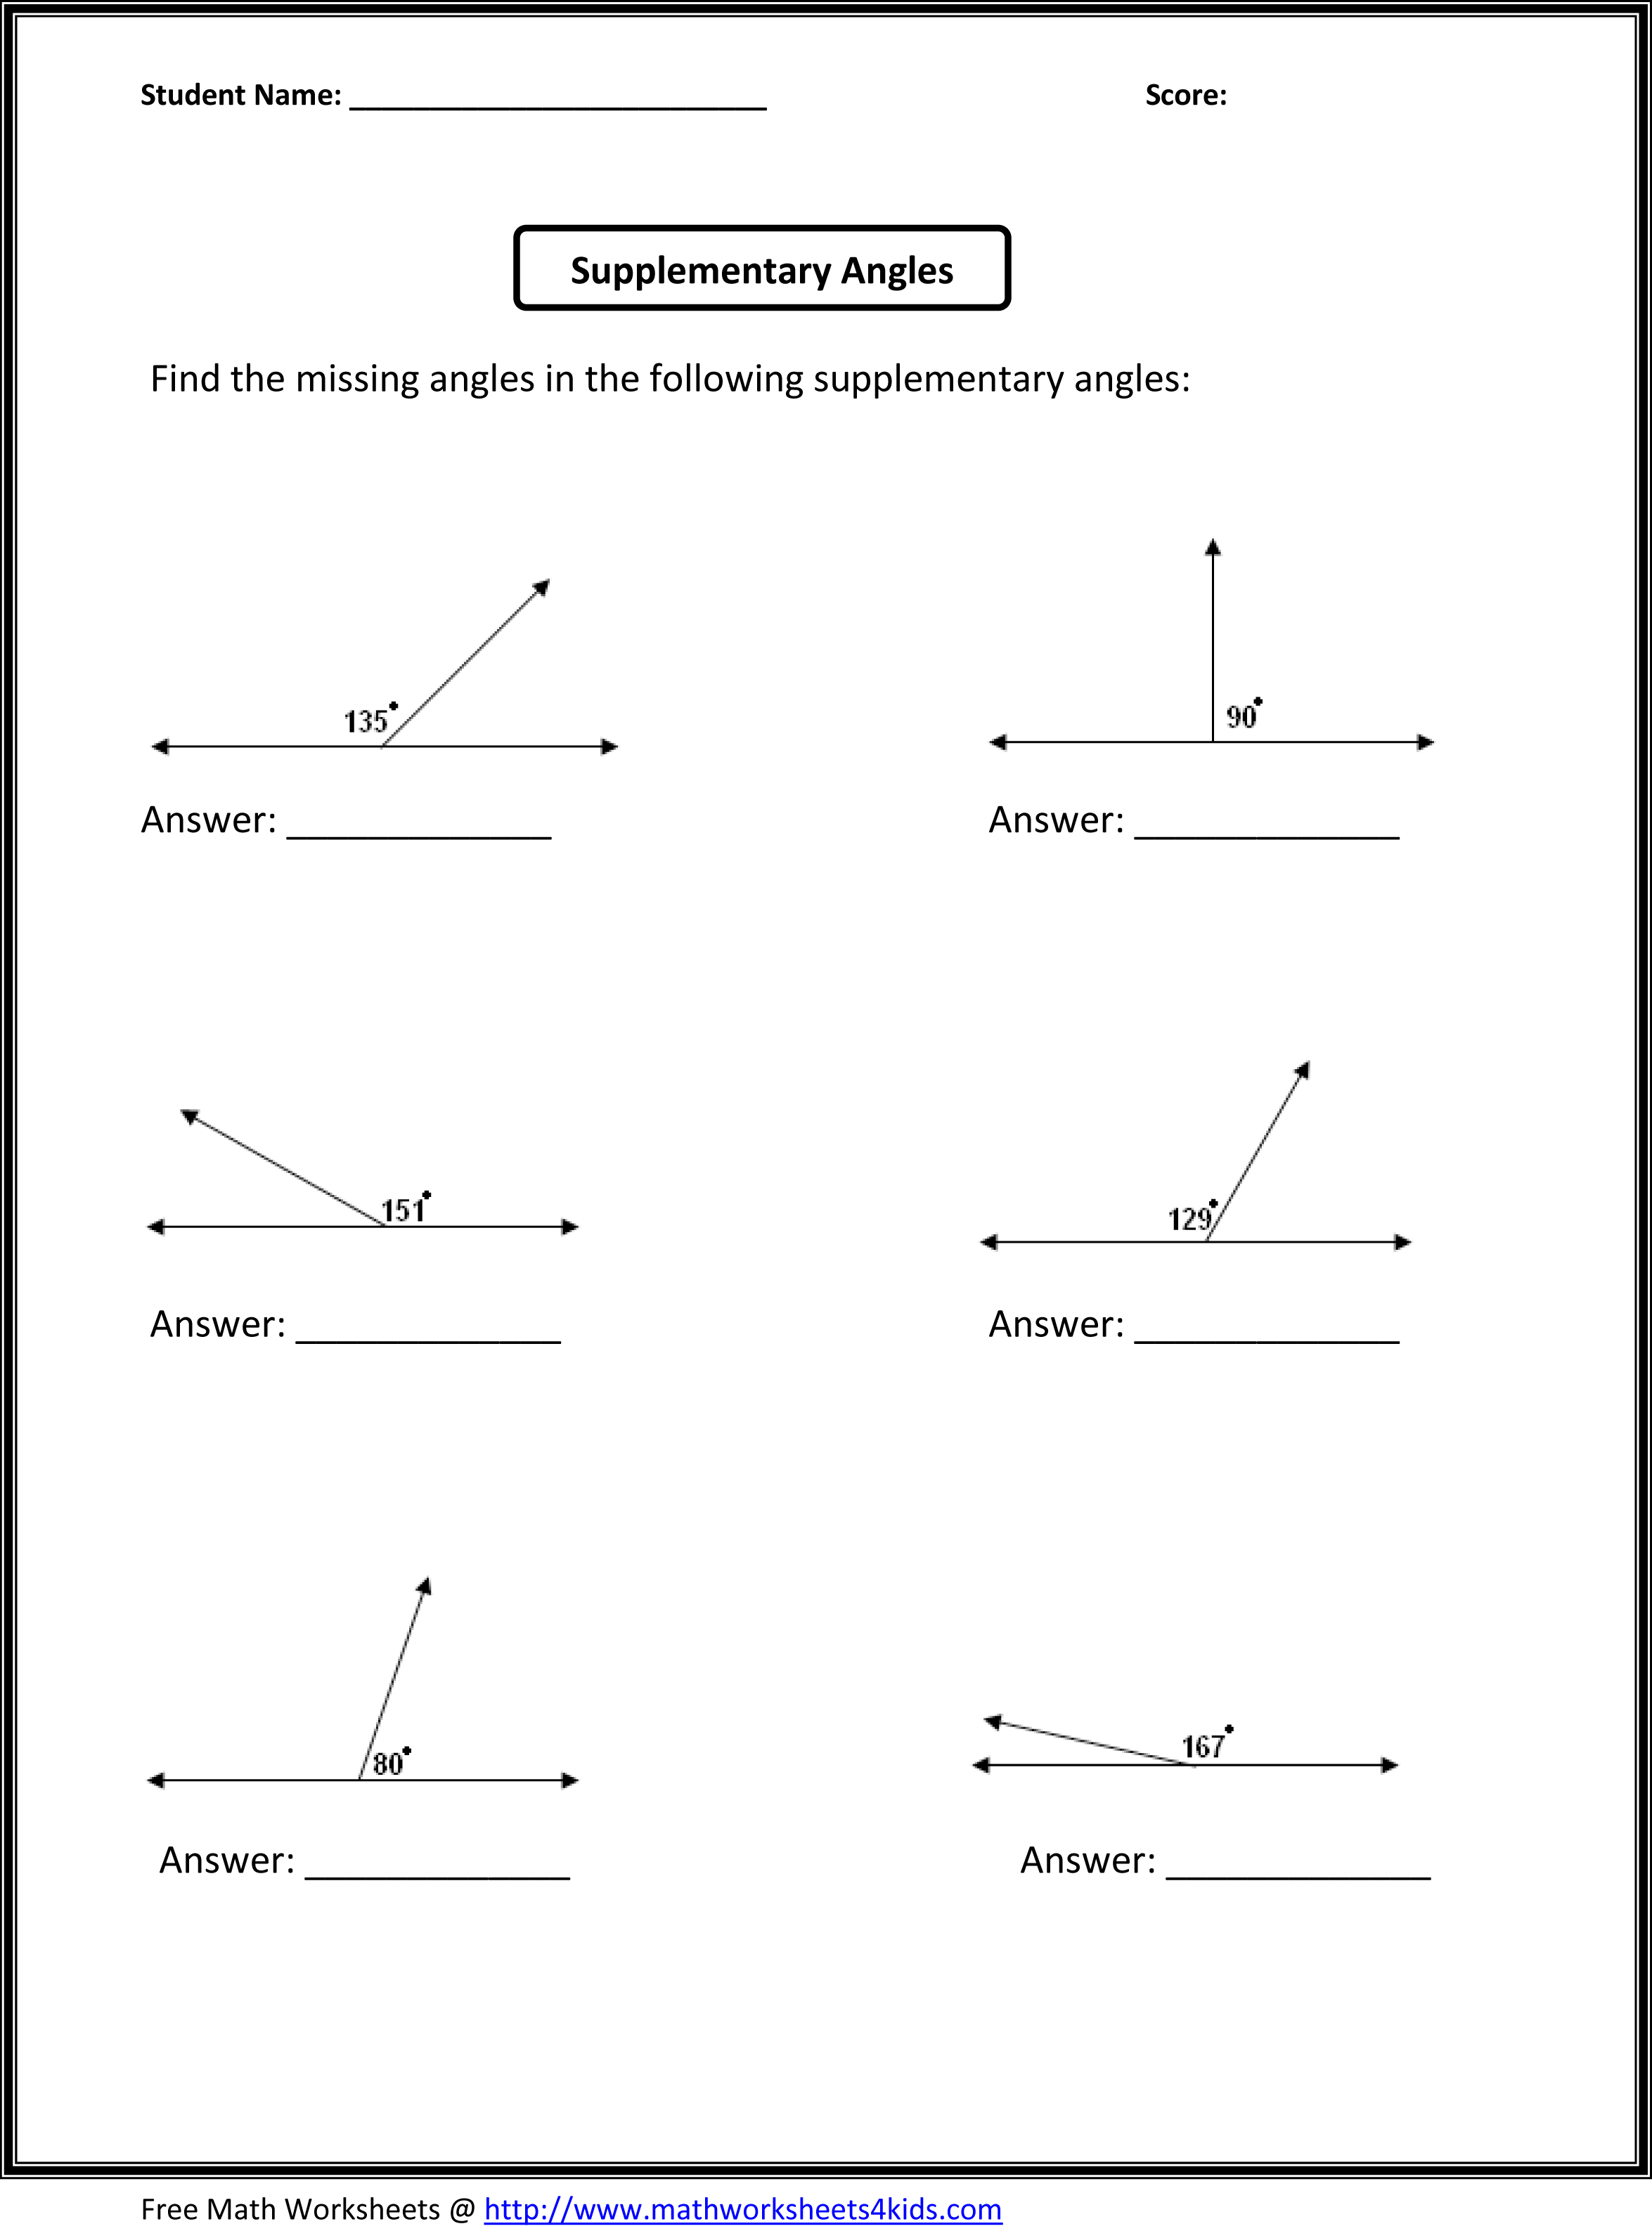 Printables 6th Math Worksheets math worksheet for 6th grade sixth worksheets new calendar template site